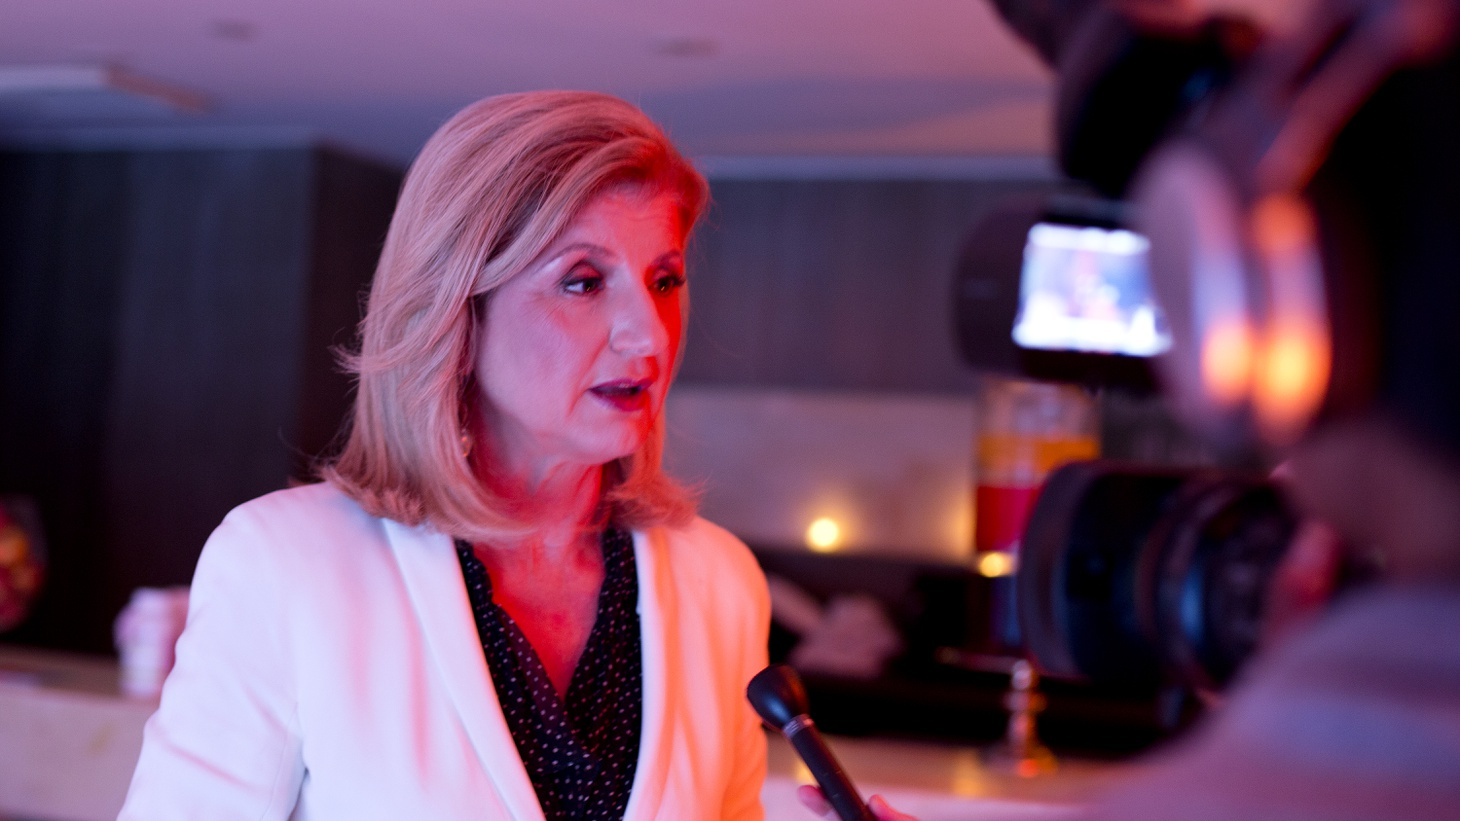 Arianna Huffington, founder of the Huffington Post, gives an interview to PBS NewsHour's political editor Christina Bellantoni on August 30, 2012